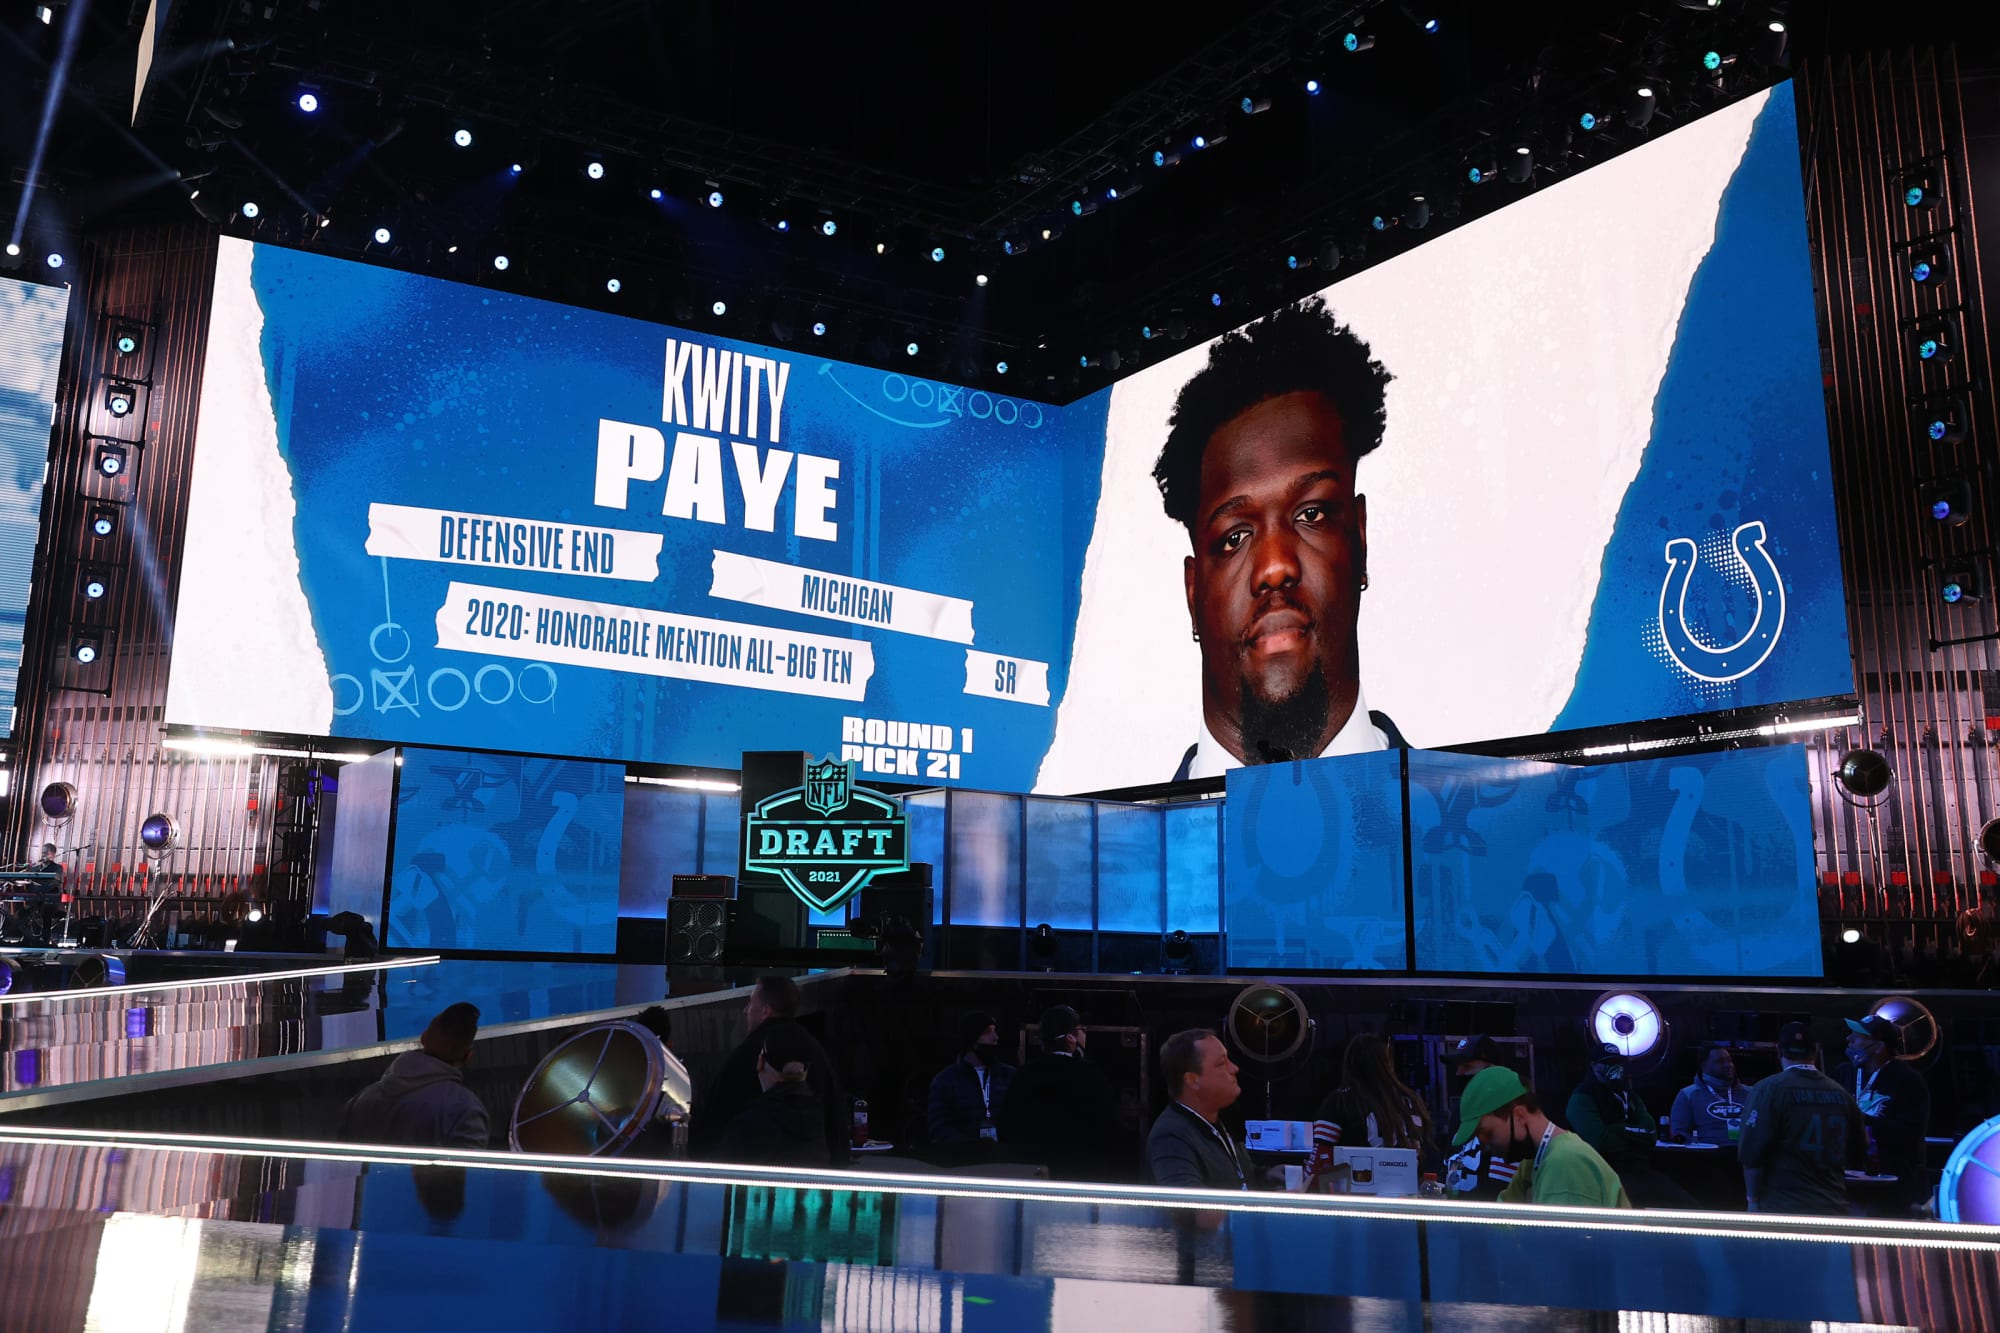 Colts should feel even better about Kwity Paye based on ...